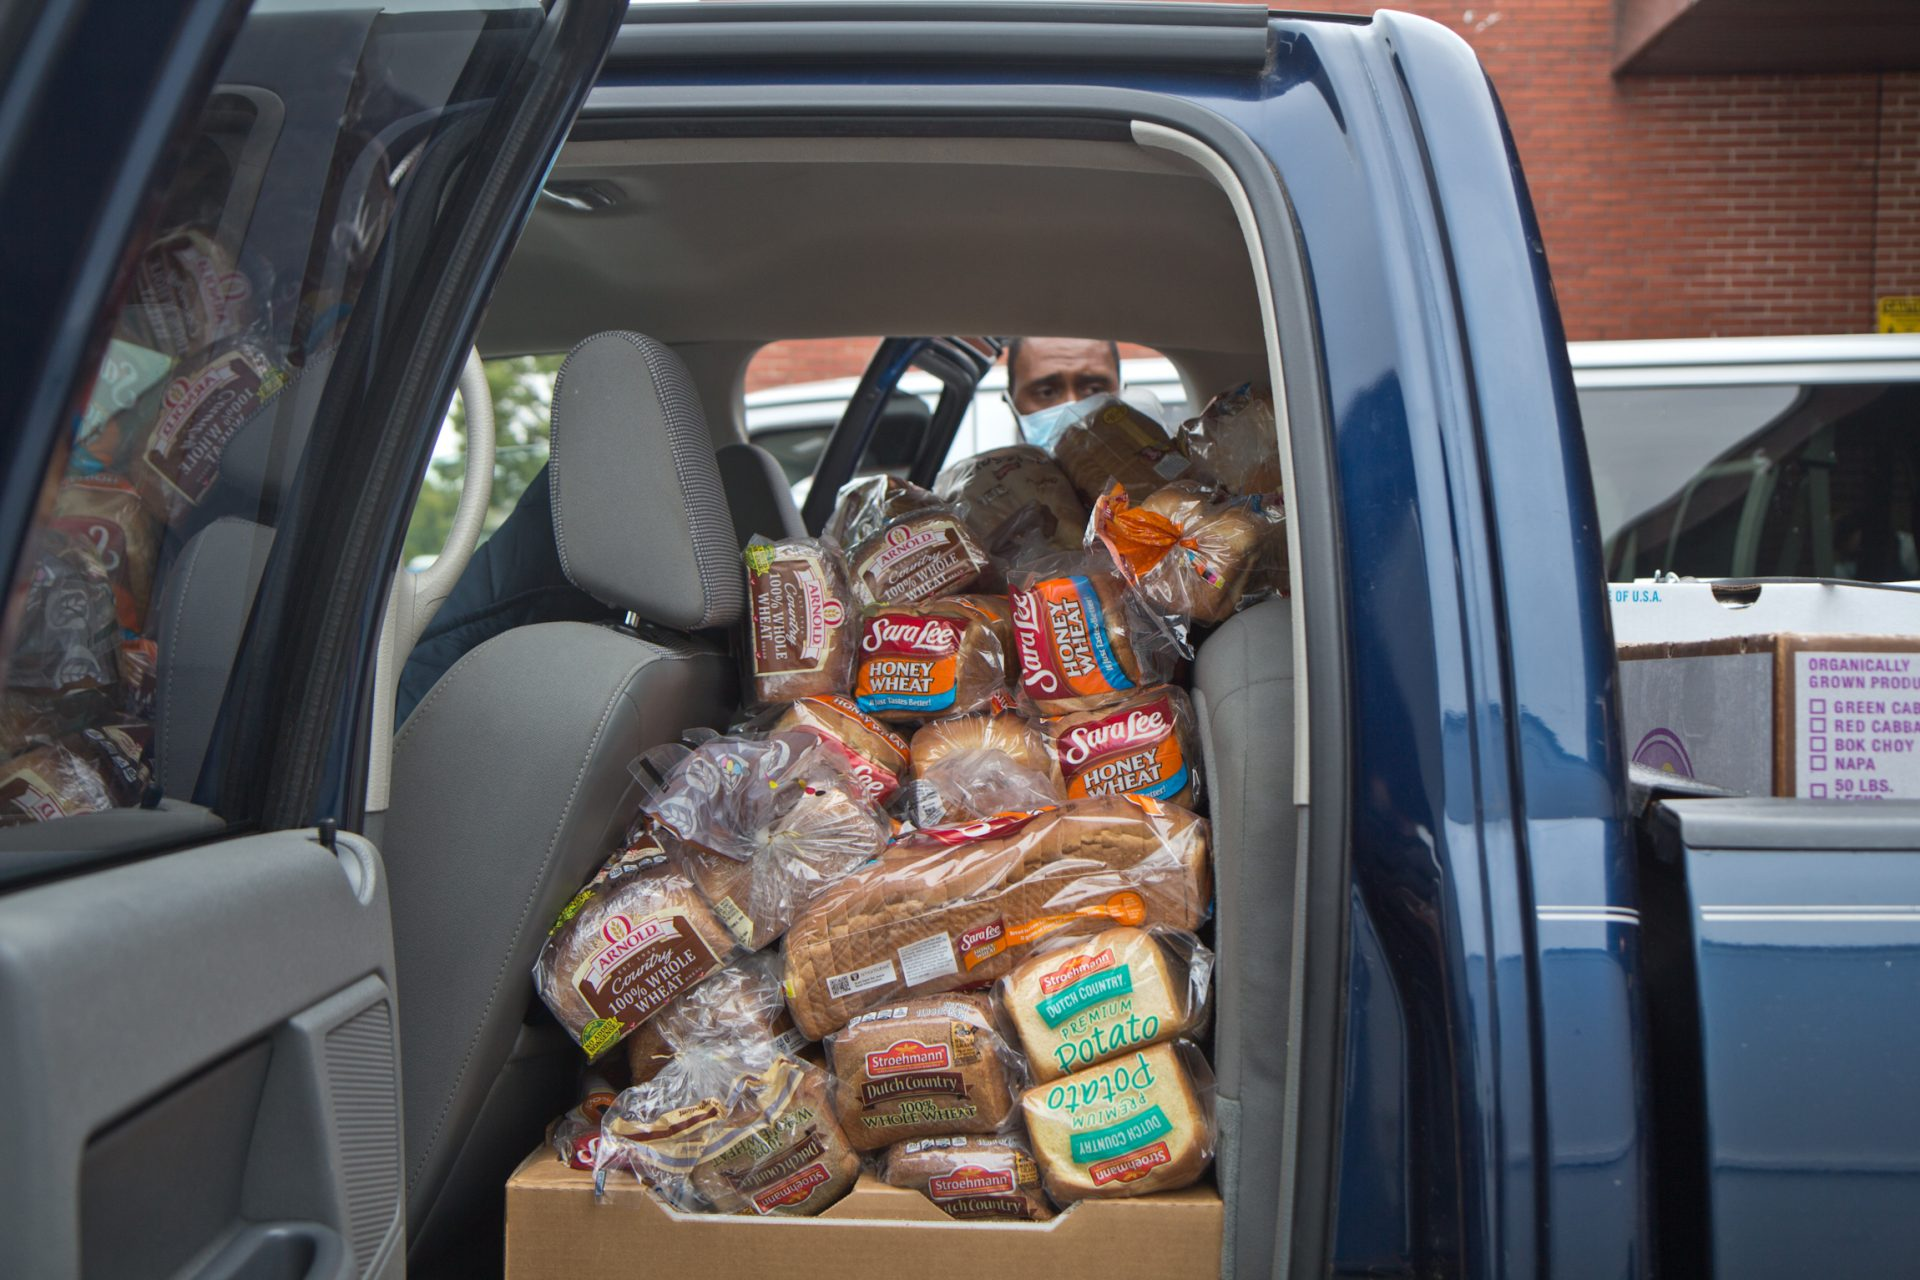 Shorter AME Baptist church members fill their truck with donations from Philabundance.